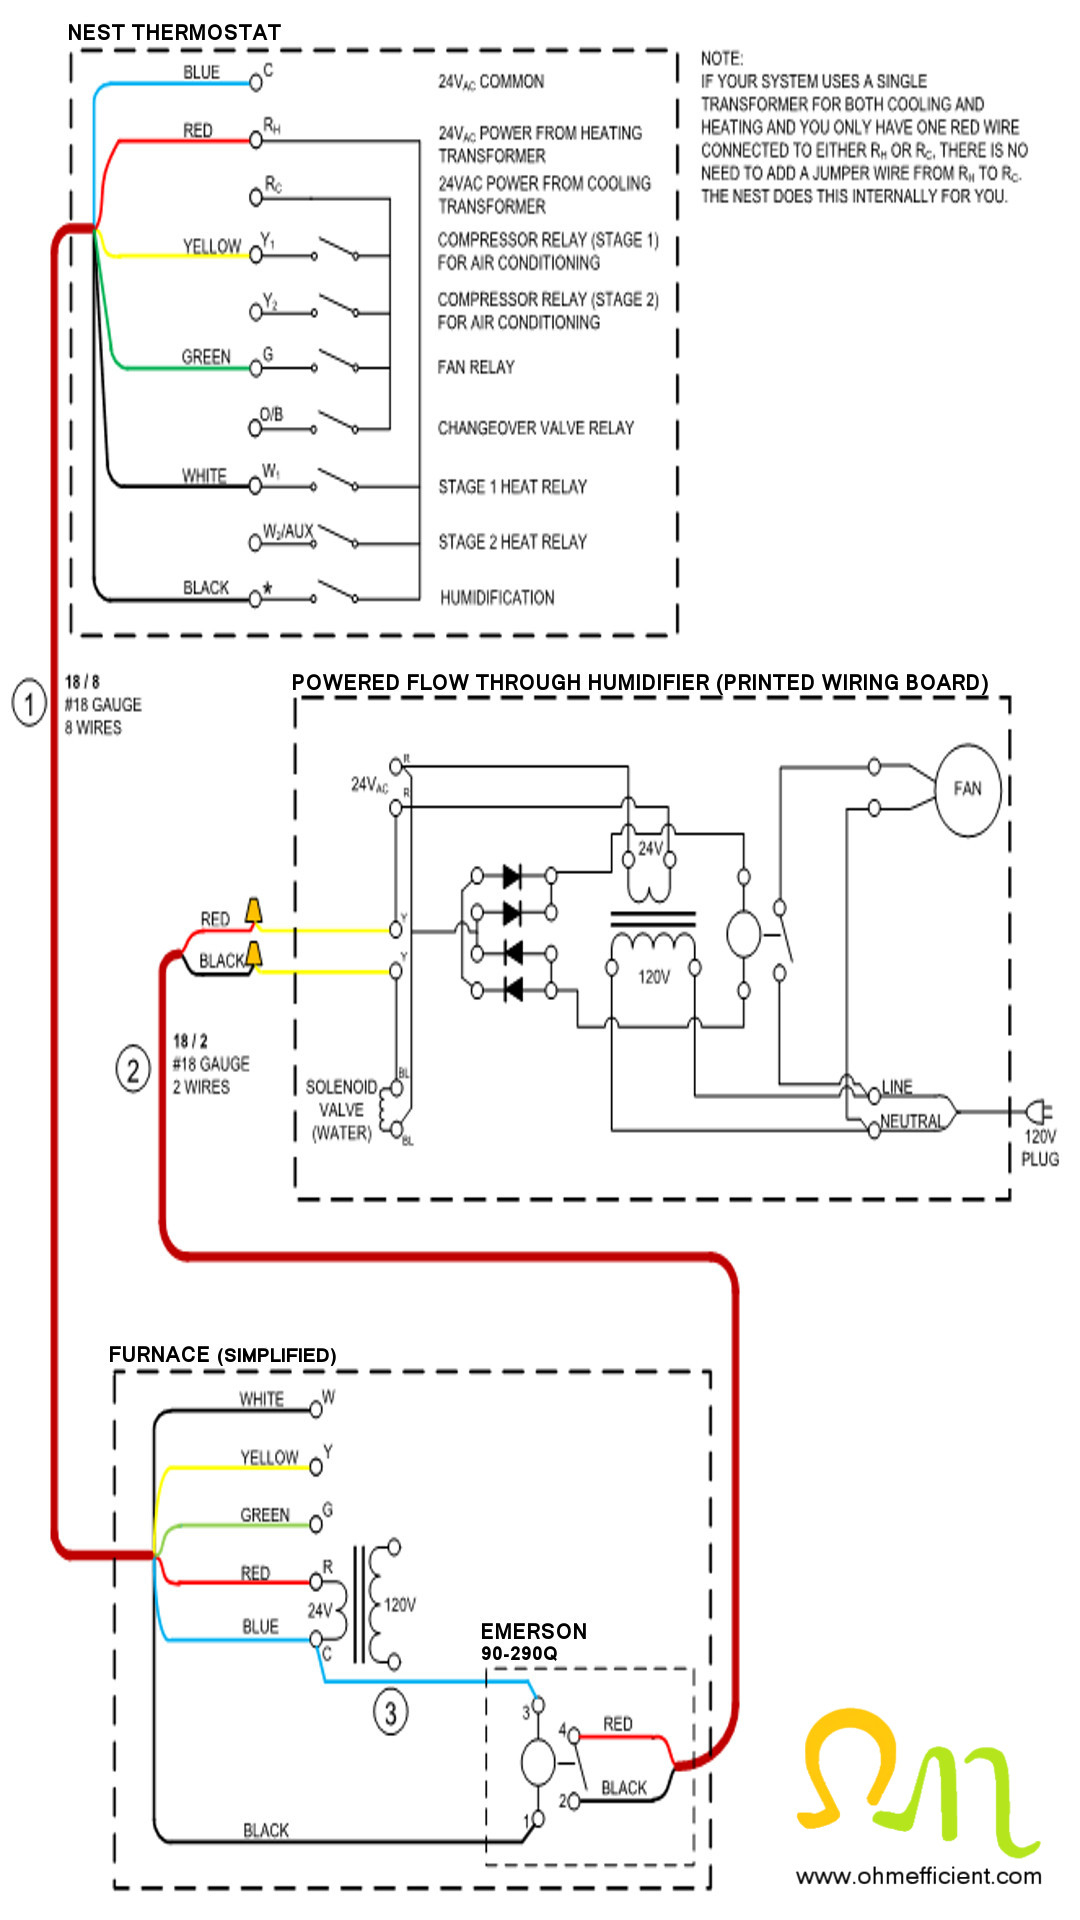 Nest Humidifier Wiring - Wiring Diagram Data - Nest Thermostate Wiring Diagram